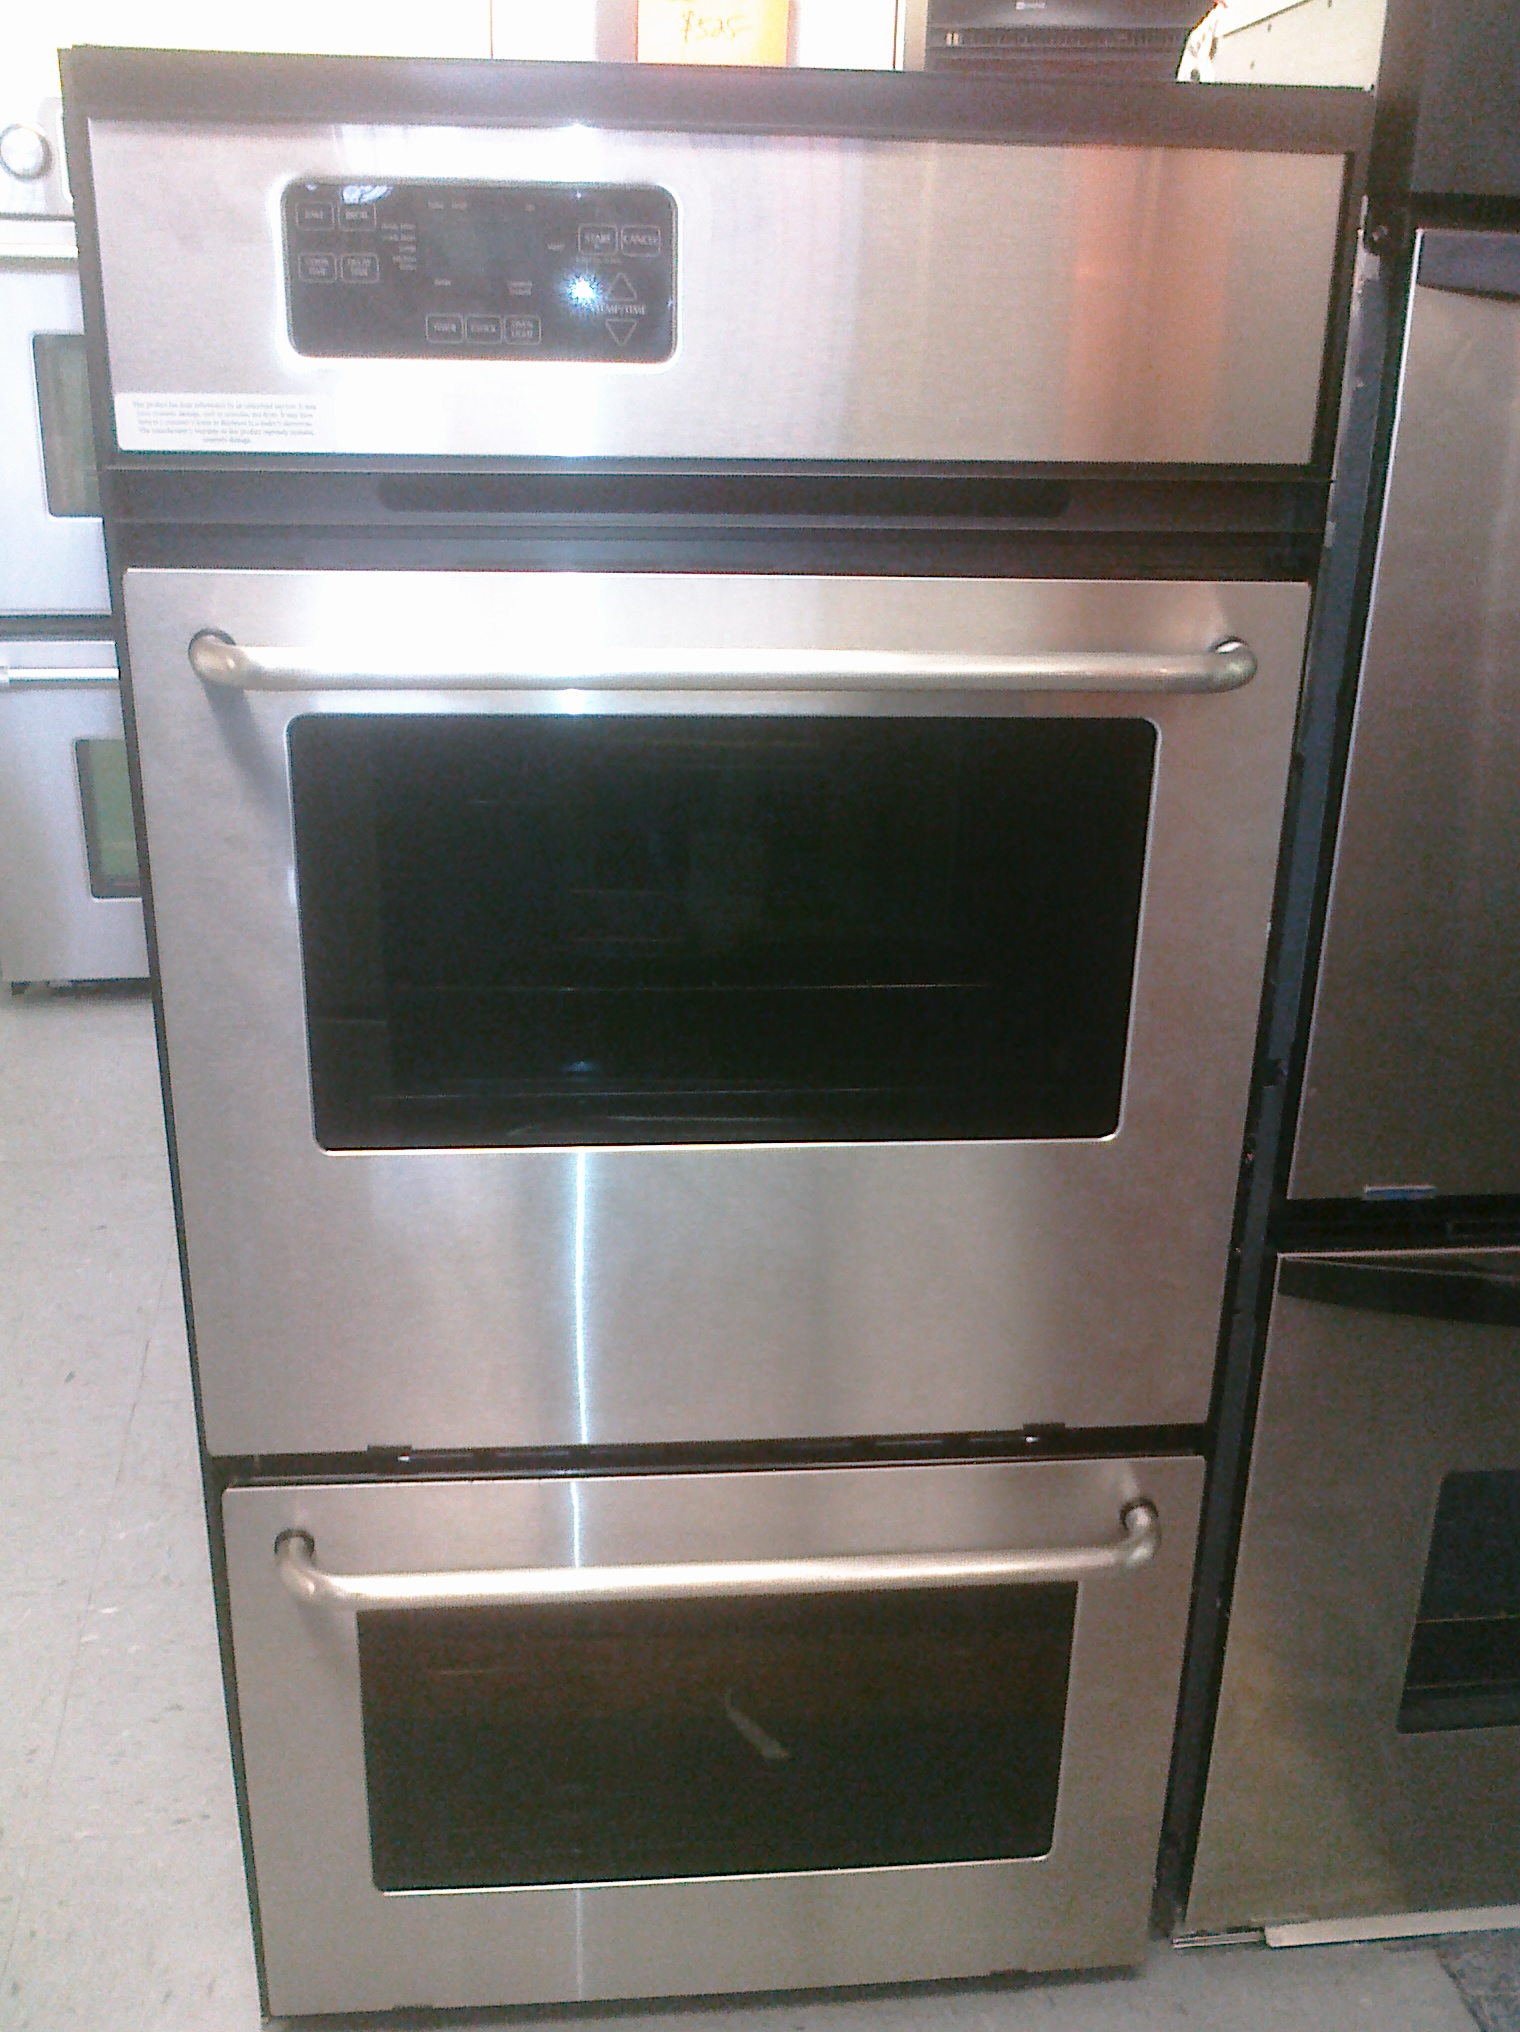 9 Maytag Cwg3600aas 24 Built In Gas Oven With Broiler Stainless